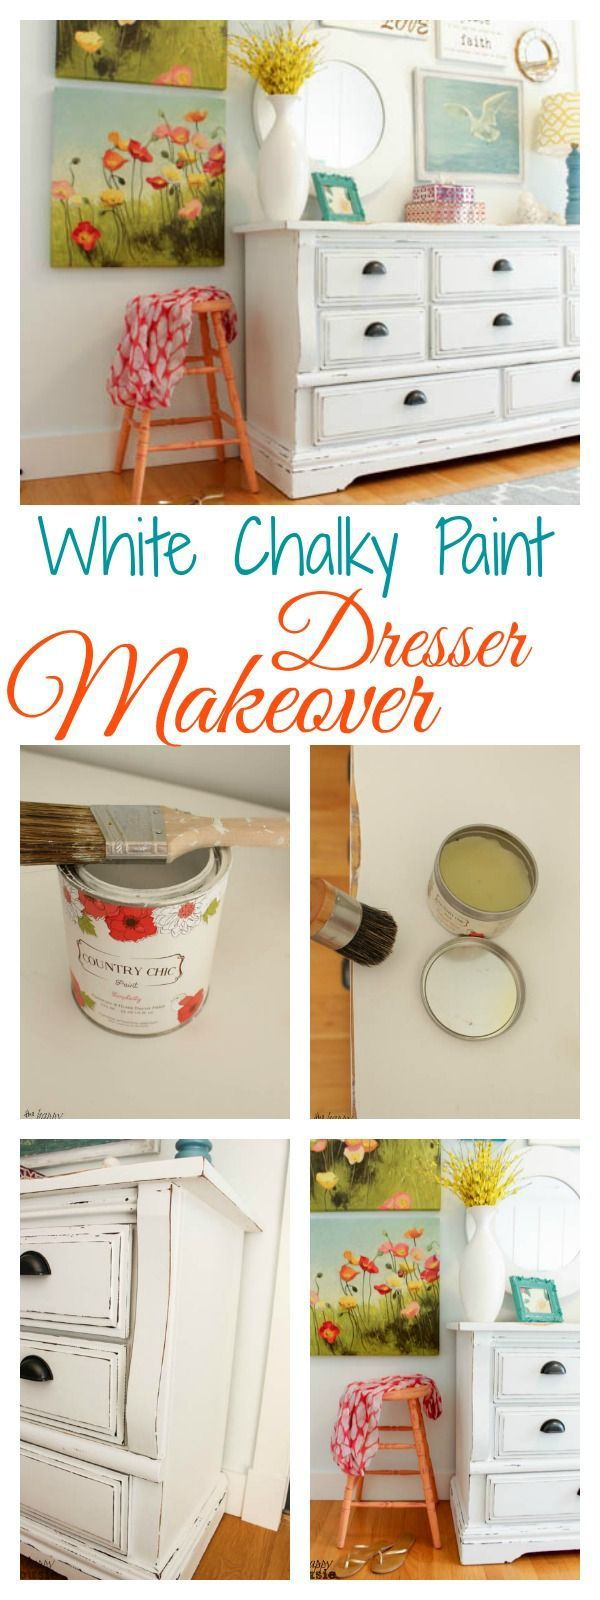 Diy Crafts Ideas : White Chalky Paint Dresser Makeover  The Happy Housie